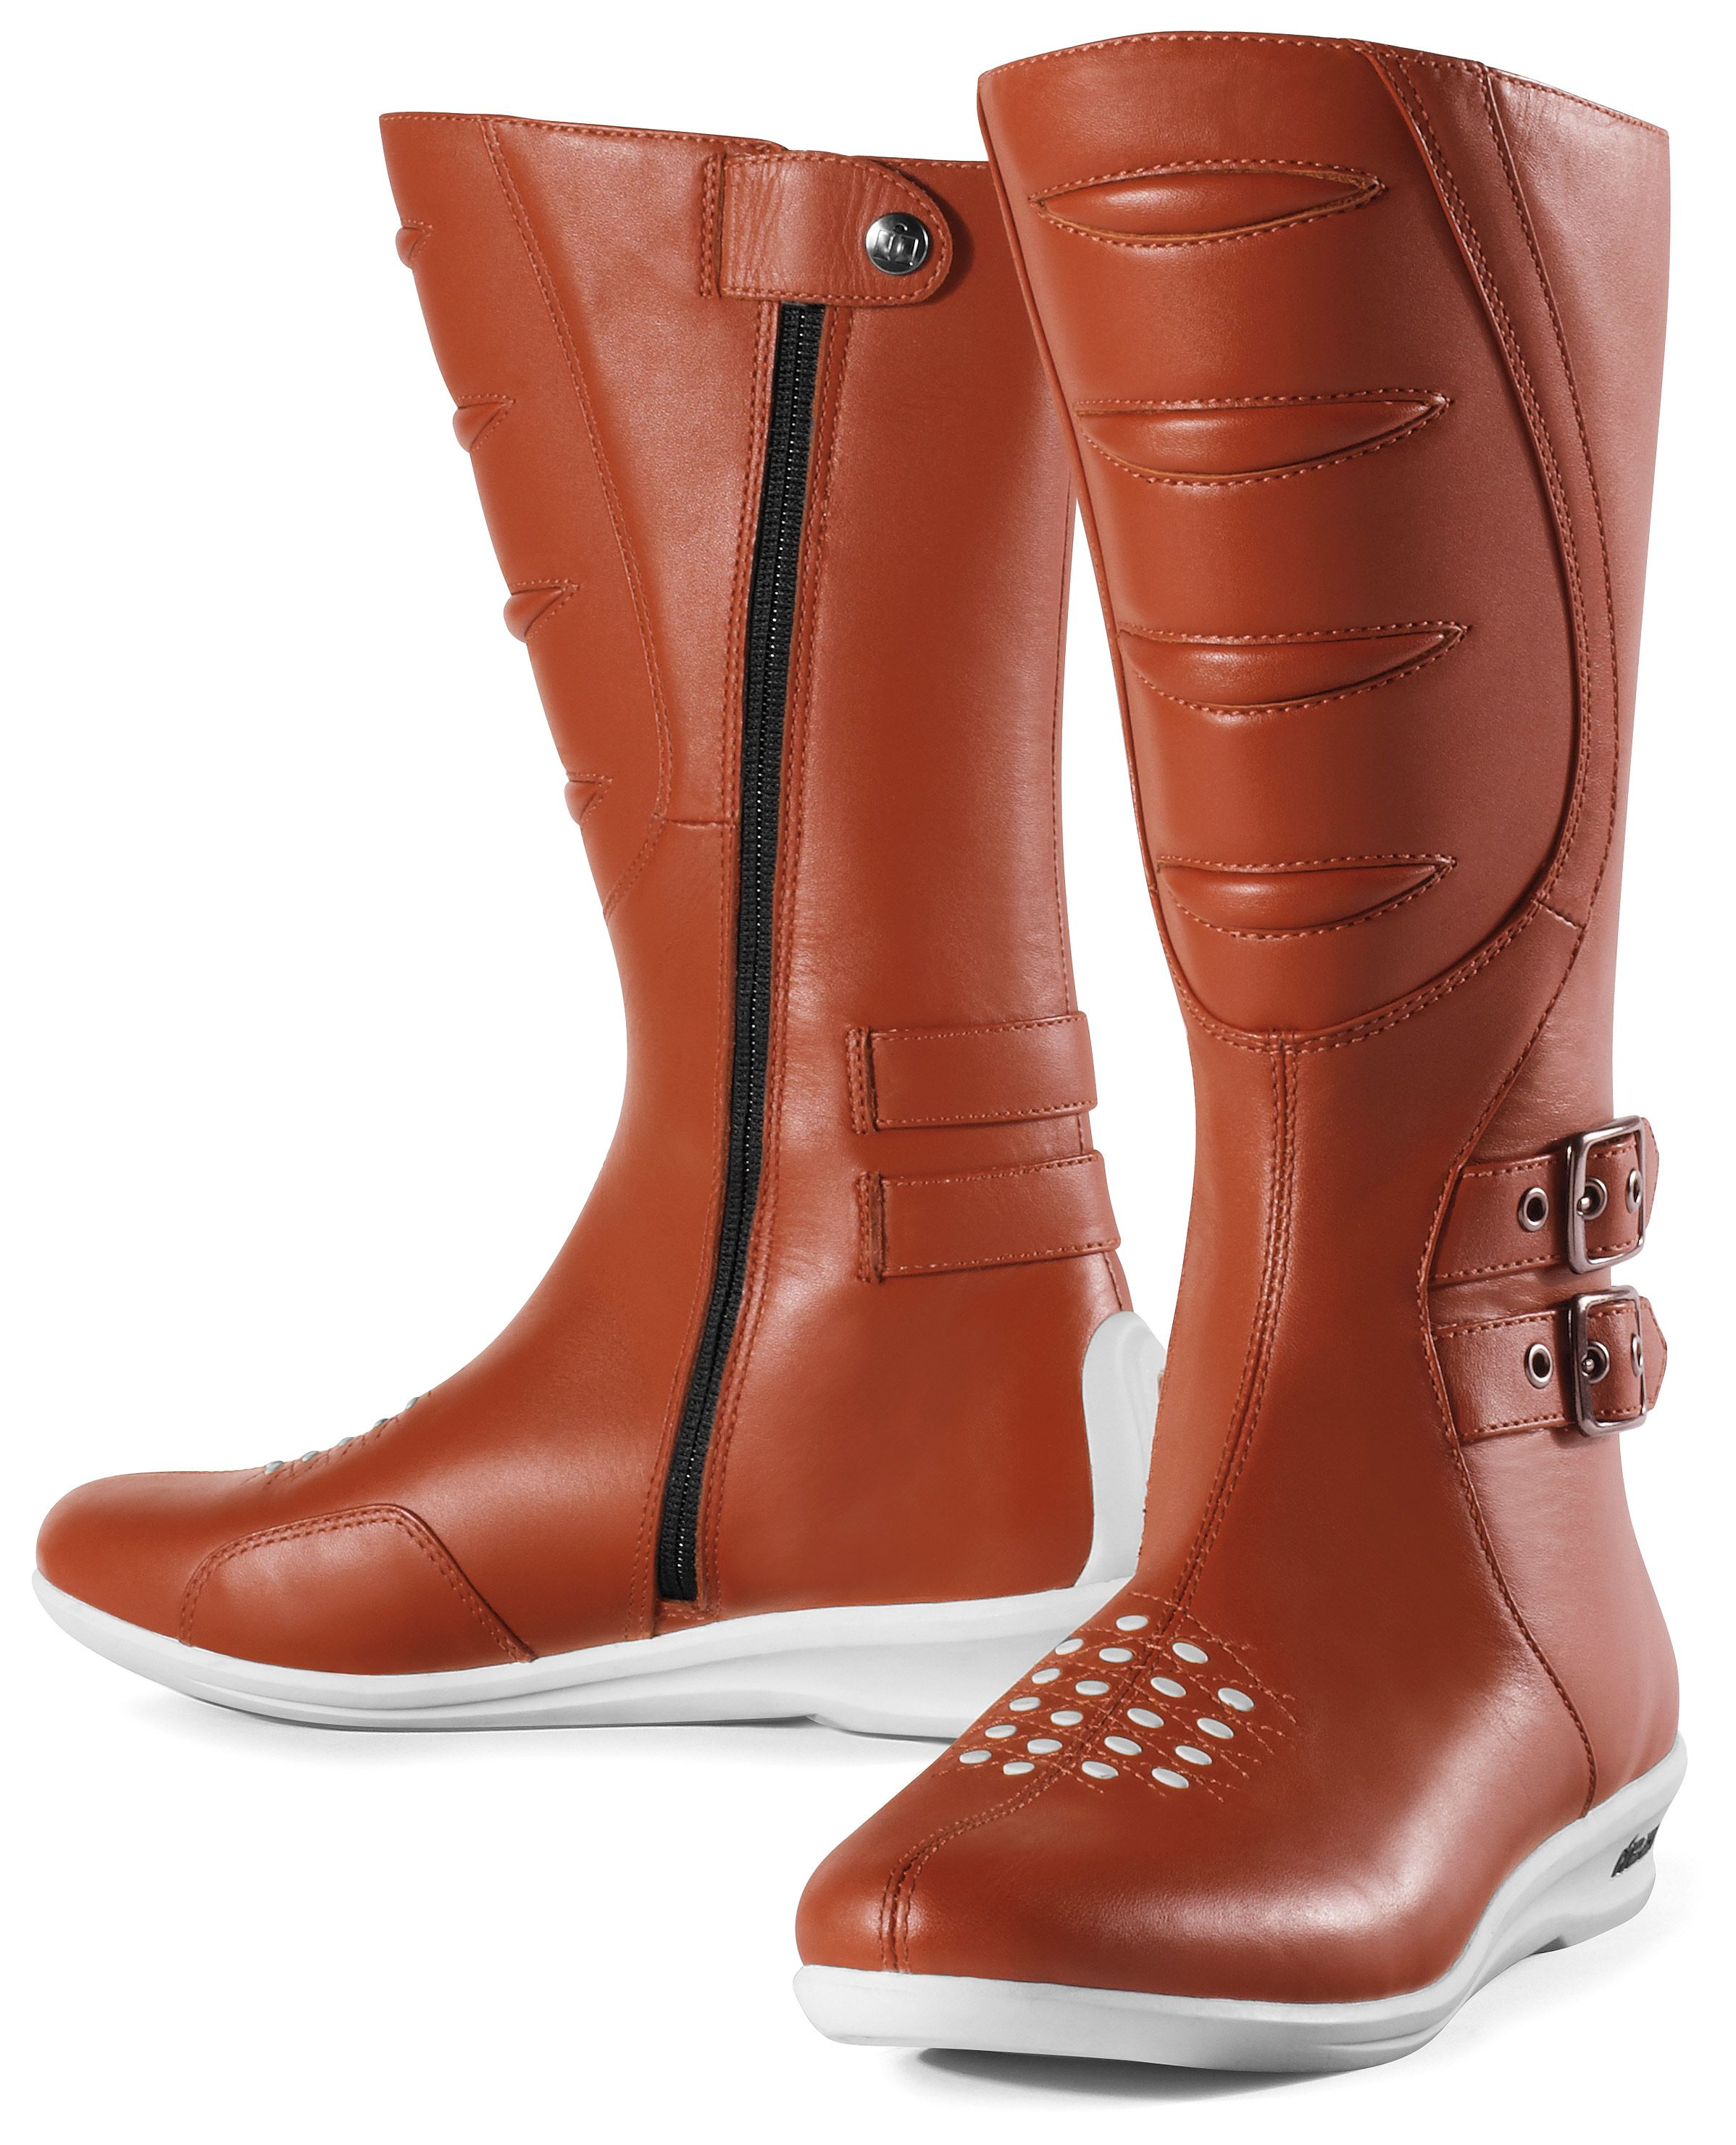 Icon Sacred Tall Women's Boots (Size 7.5 Only) - RevZilla